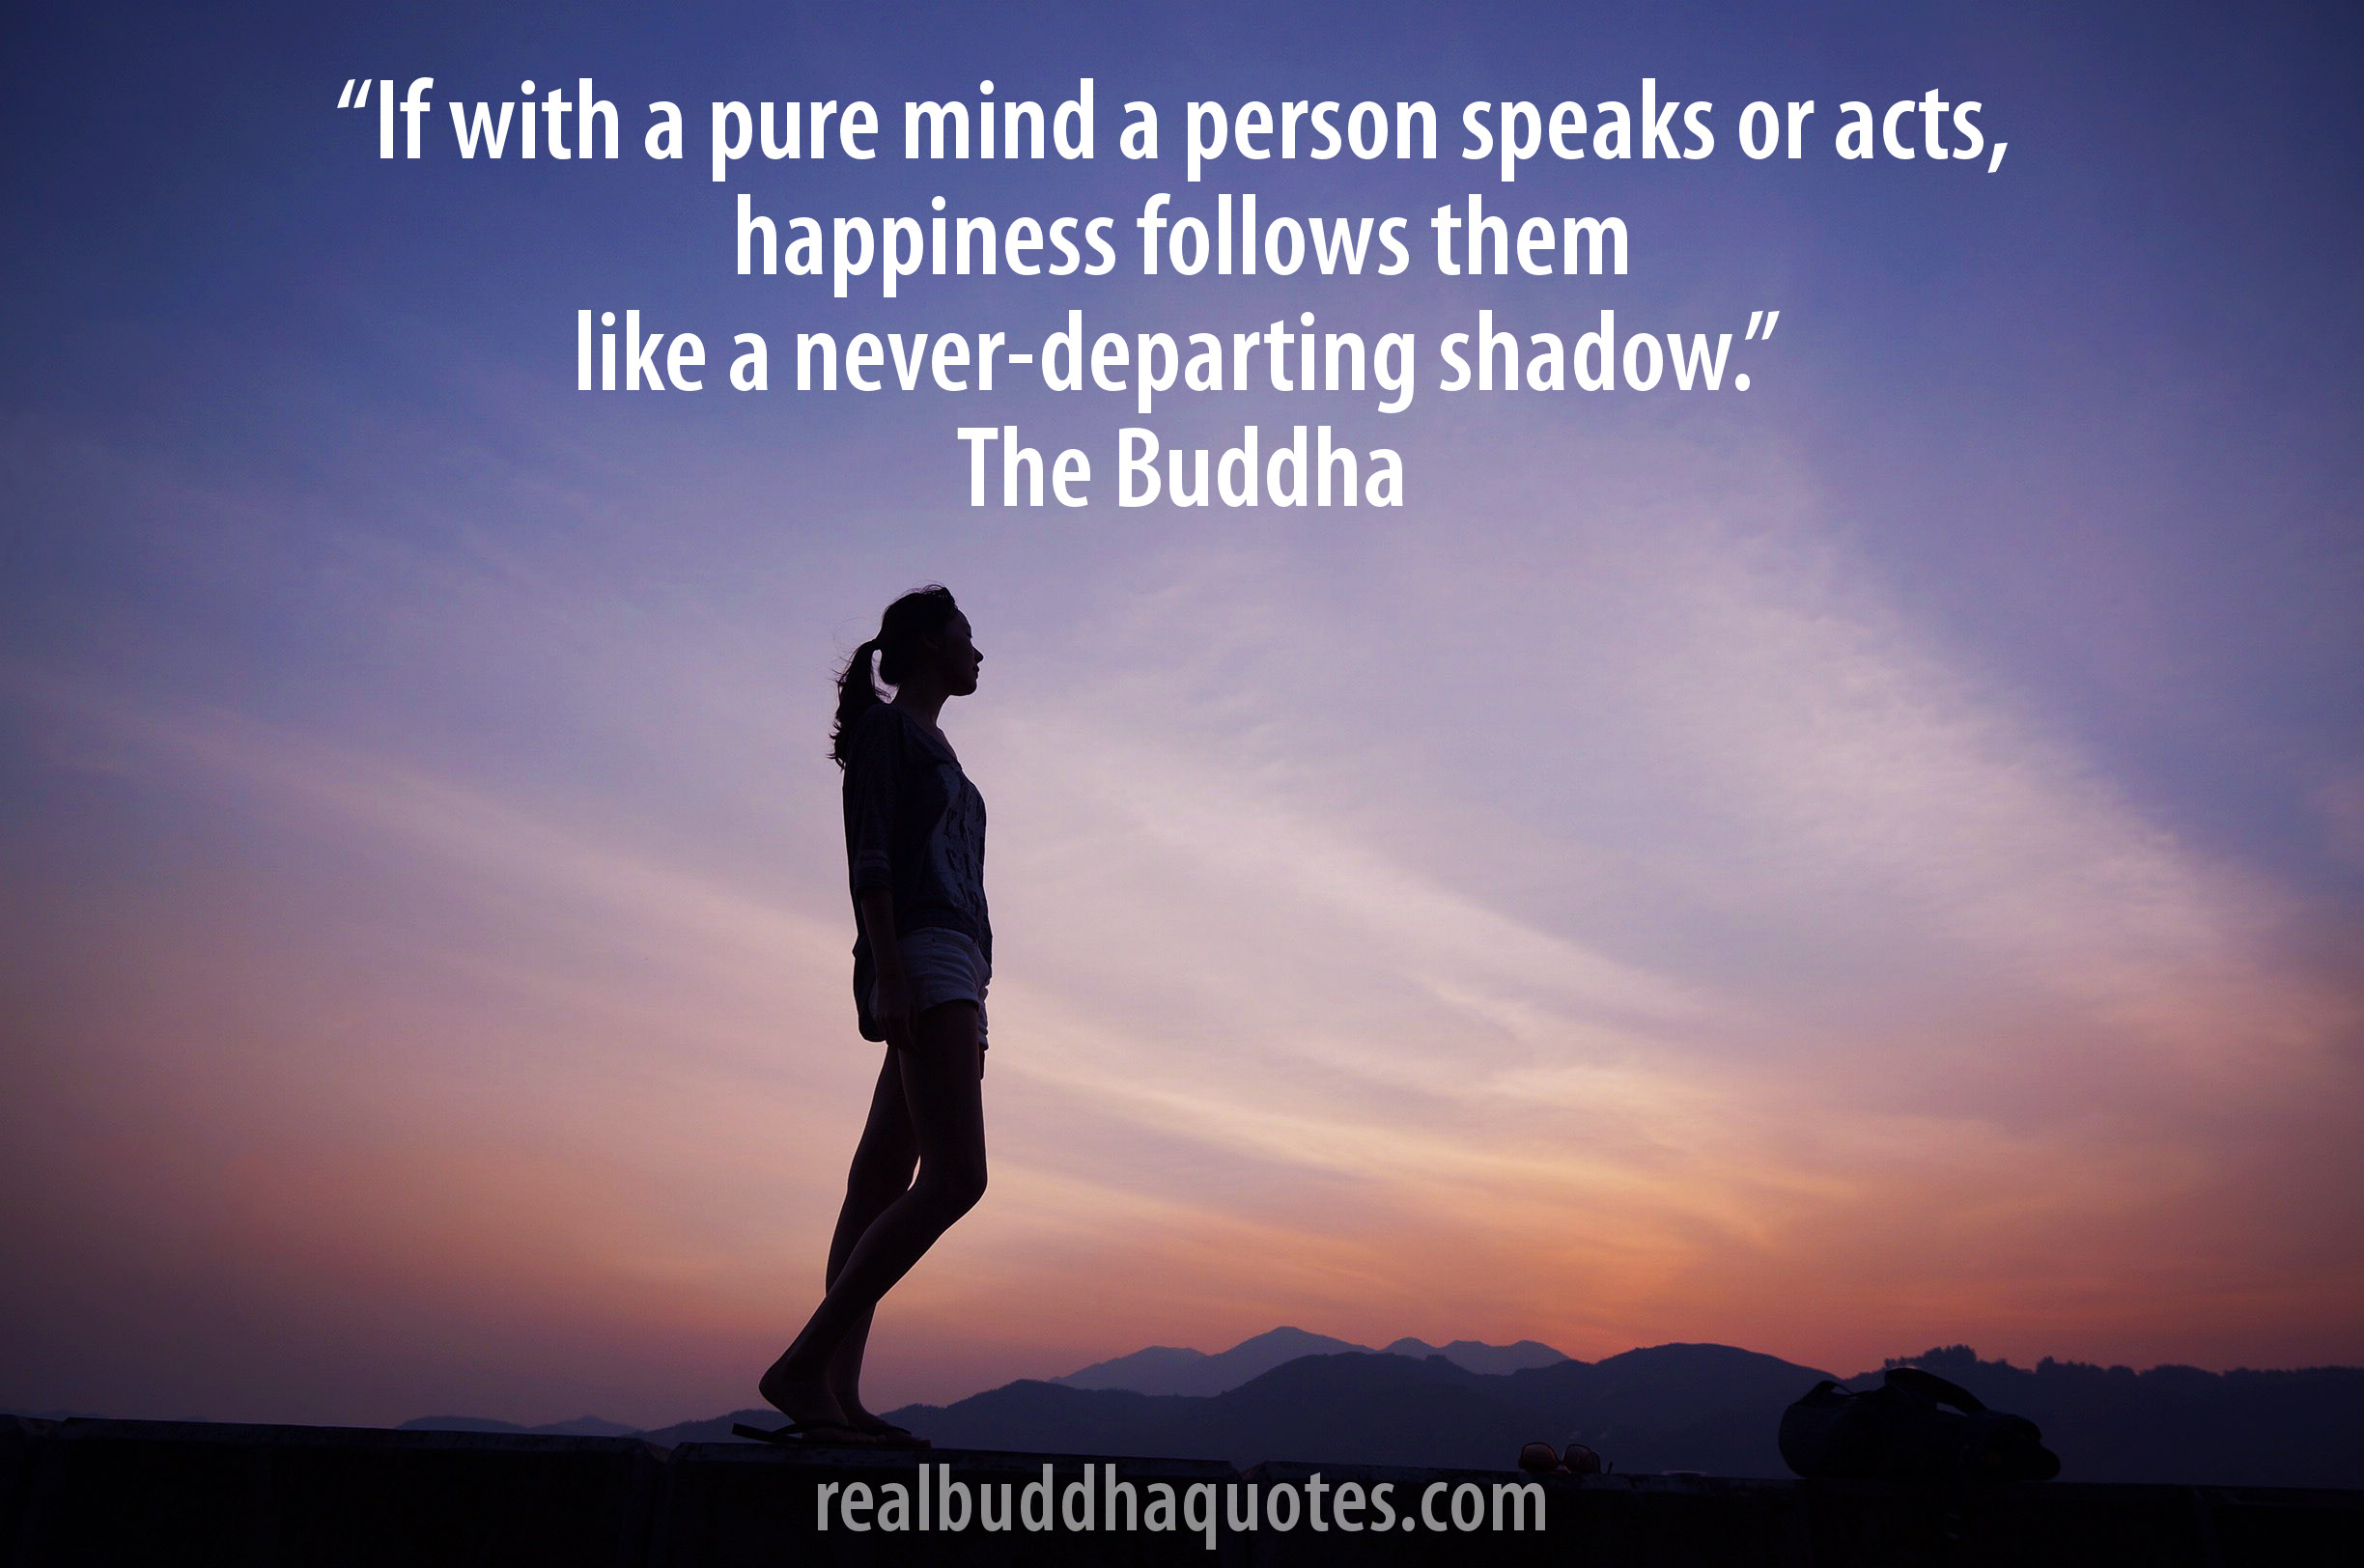 Buddha Quotes On Happiness Gorgeous If With A Pure Mind A Person Speaks Or Acts Happiness Follows